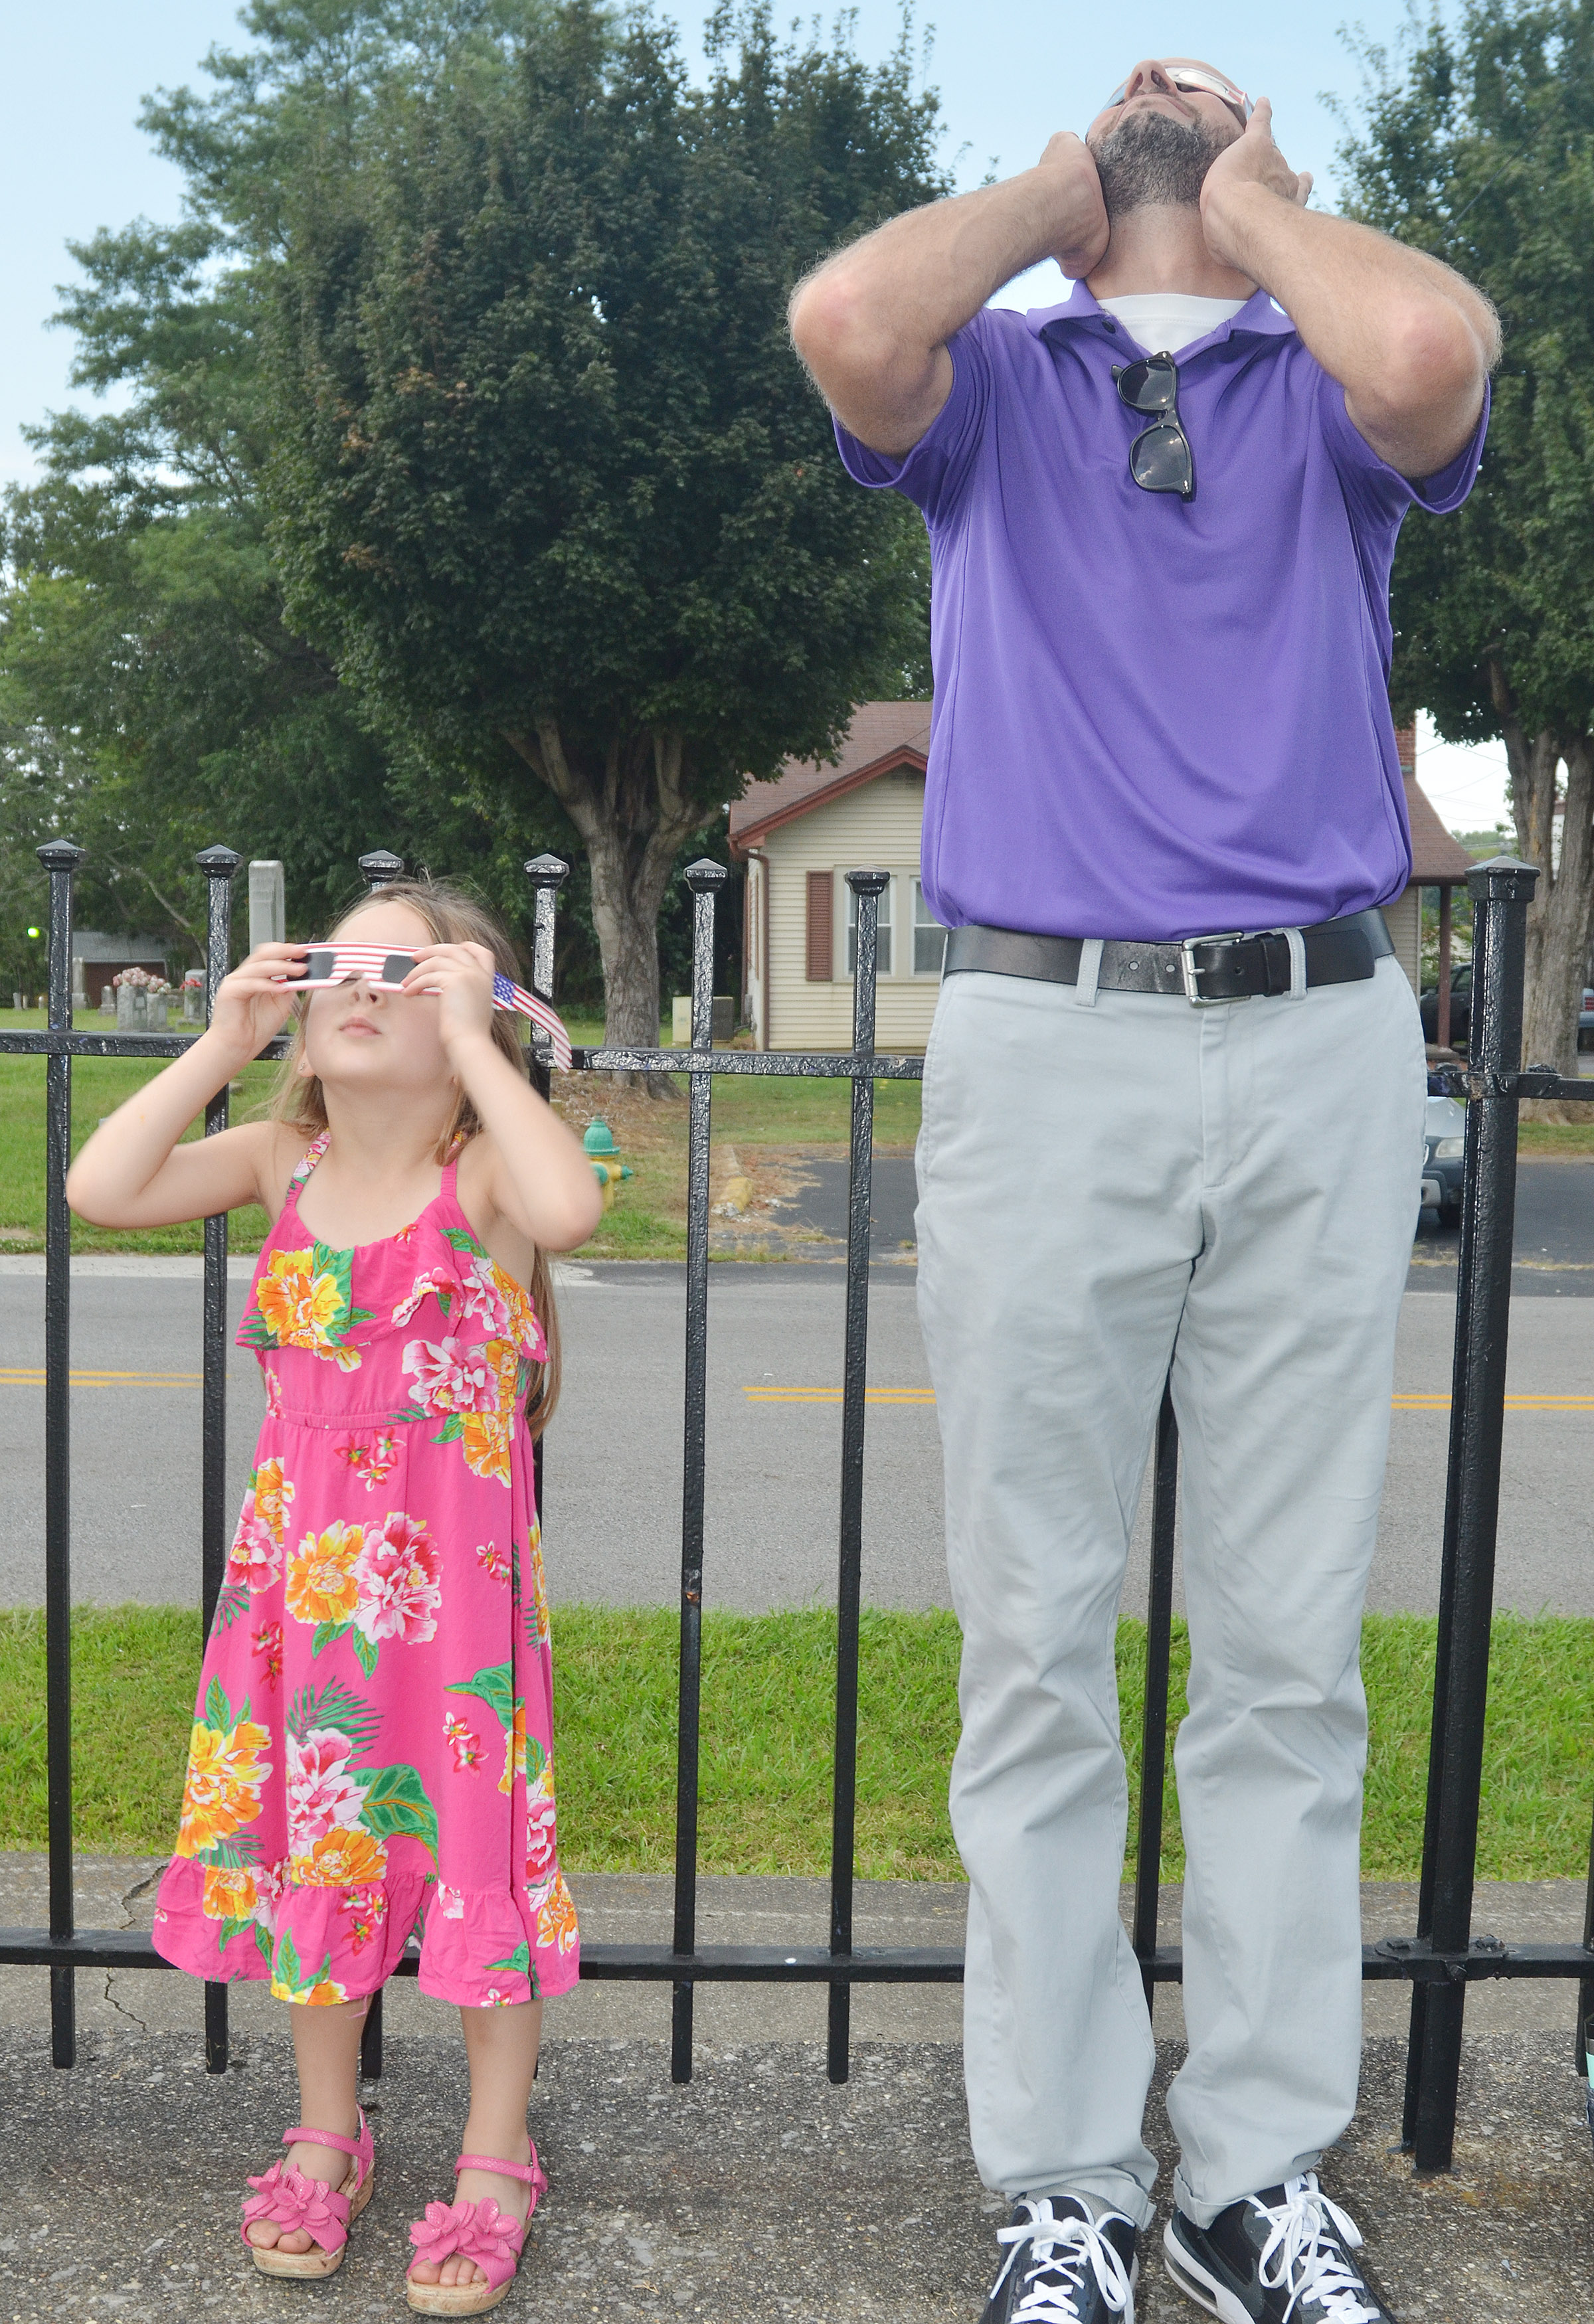 CHS teacher Ben Davis views the eclipse with his daughter, Lylah, who attends preschool at CES.